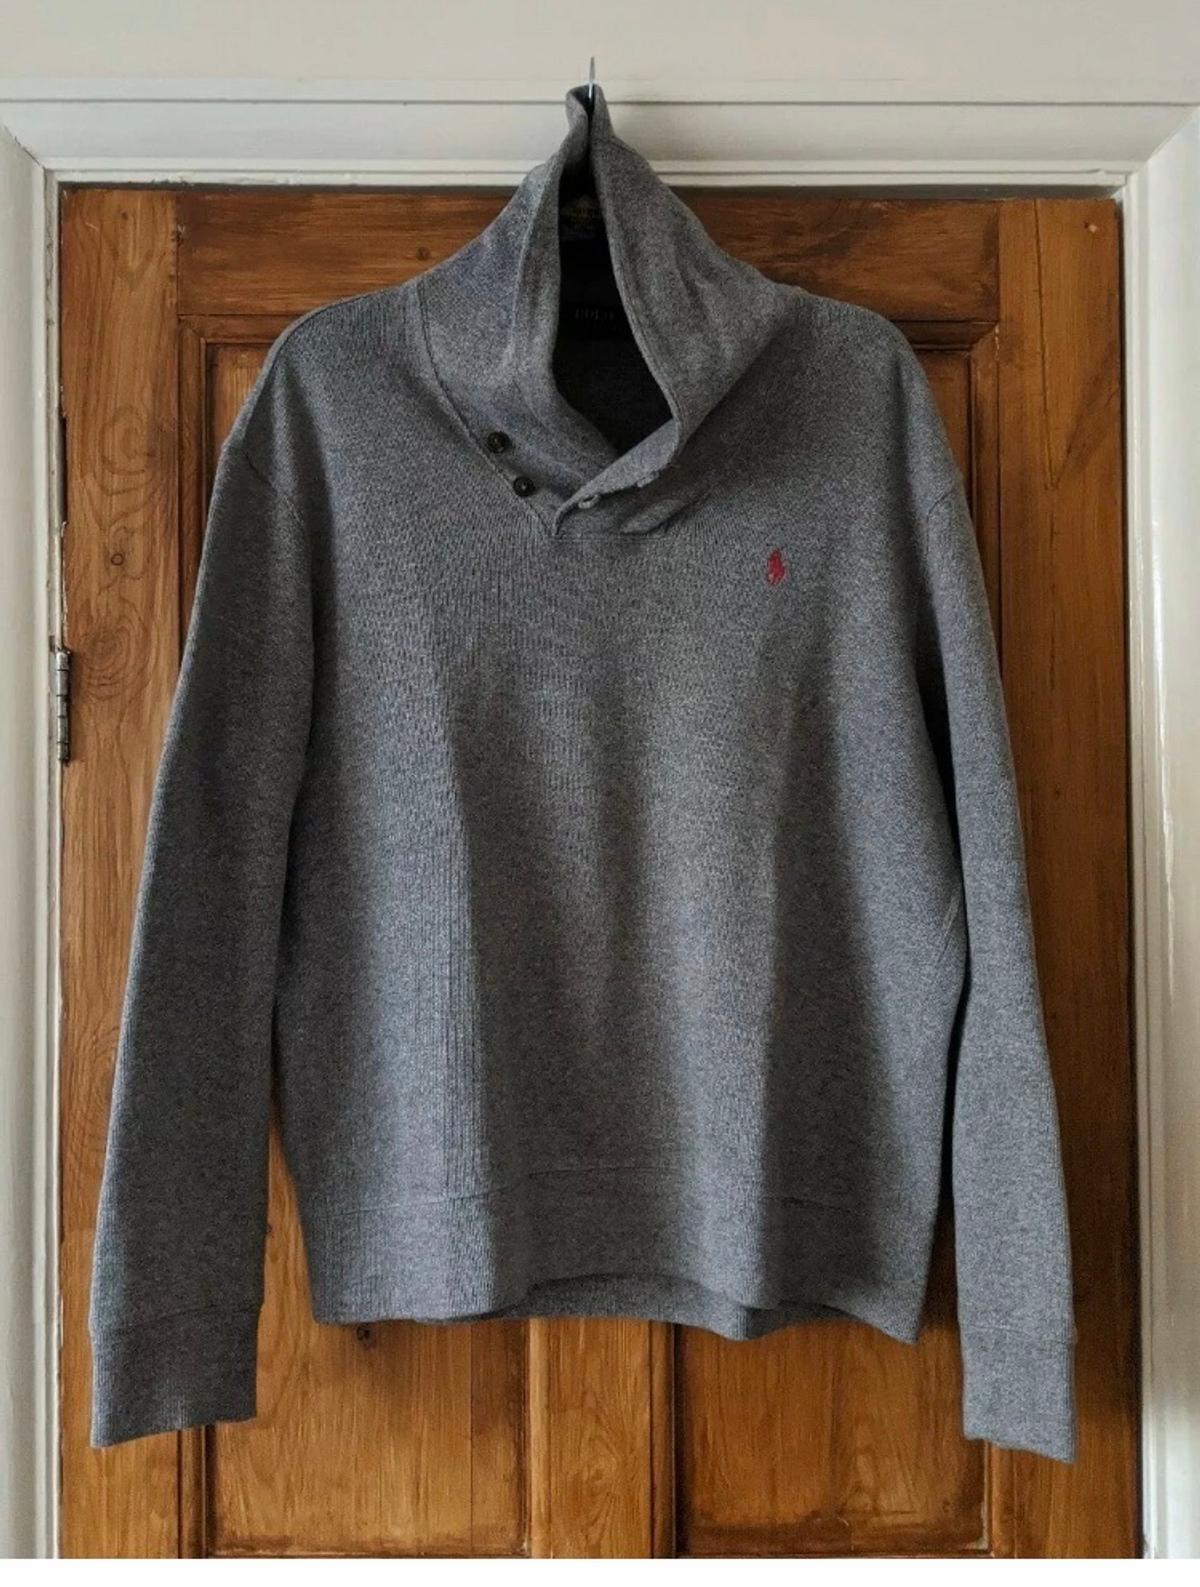 Ralph Lauren Super Soft 100% Cotton Jumper Sweater Casual Size L Shawl Neck Warm. Used but in very good condition. Dispatched with Royal Mail 2nd Class.